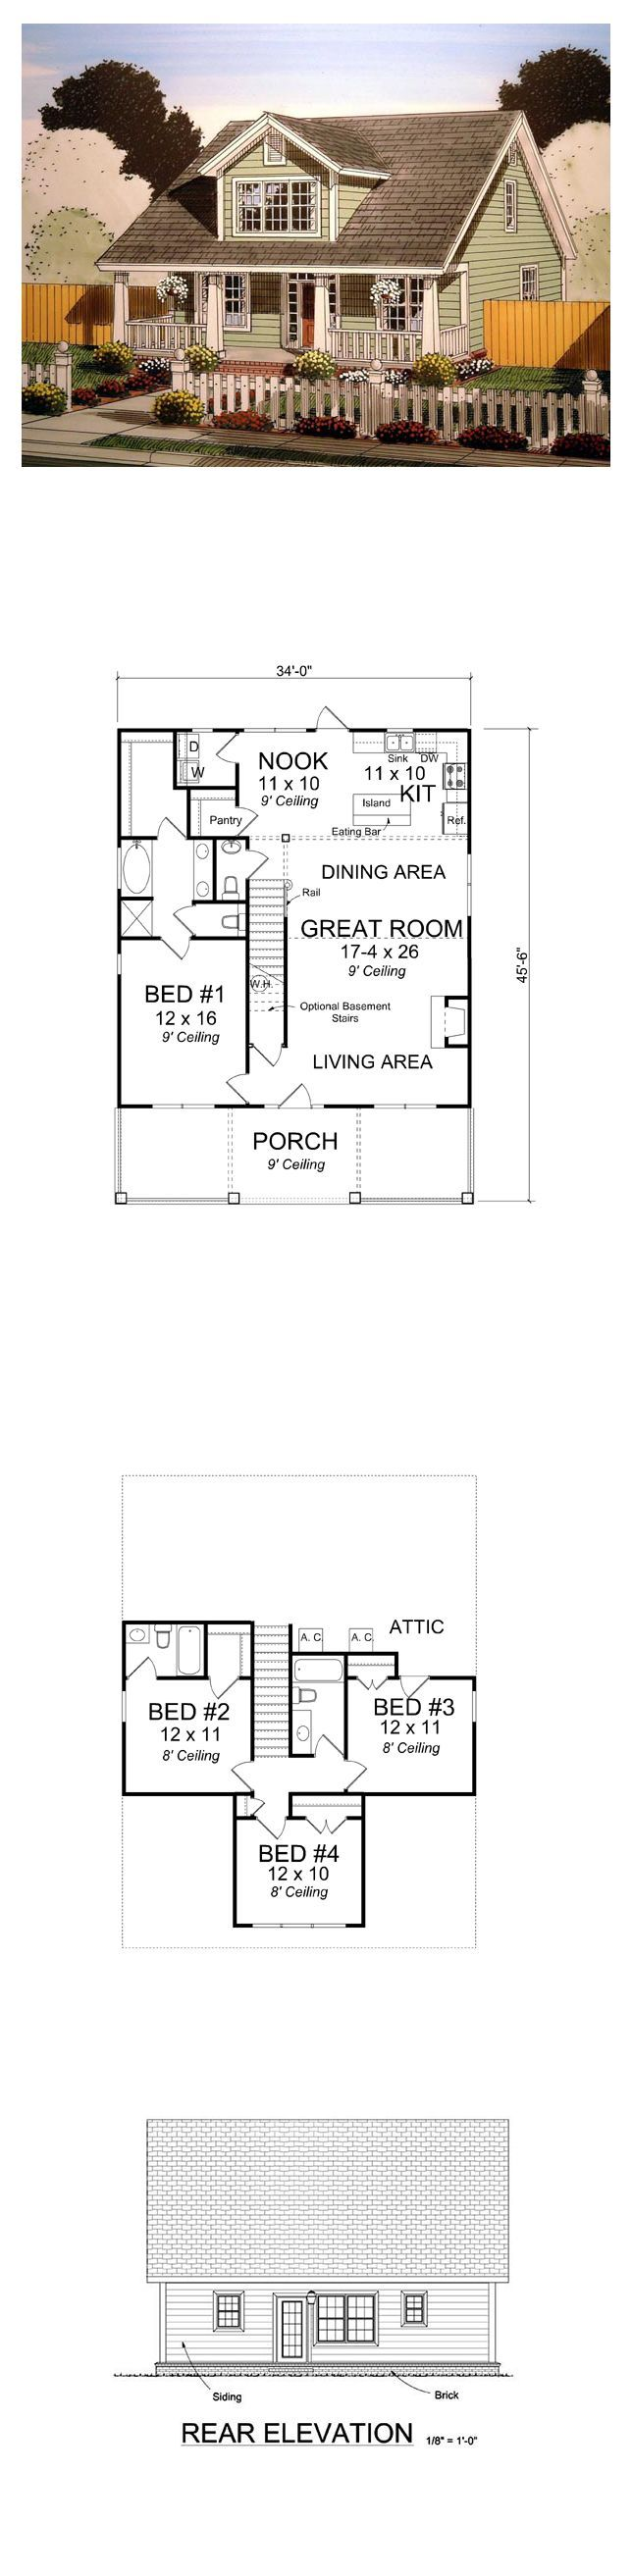 Country Style House Plan 61403 With 4 Bed 4 Bath Country Style House Plans Craftsman House Plans Cape Cod House Plans